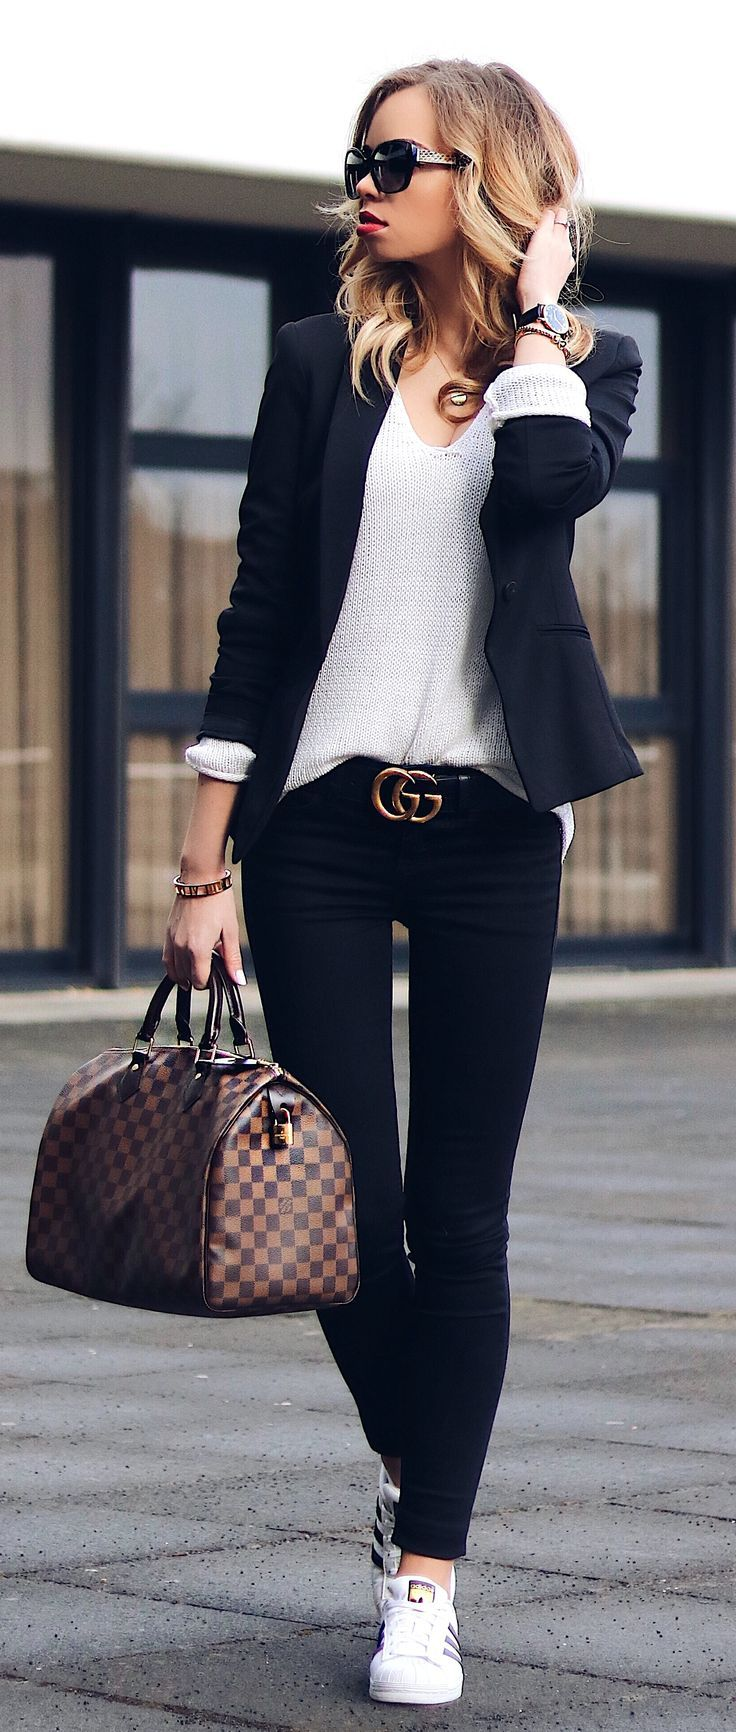 Outfit-Style-Fashion-Casual-Casual Chic-Gucci-Gucci Gürtel-Gucci Belt-Louis Vuitton-Speedy-Blazer-Black and white-chic-Streetstyle